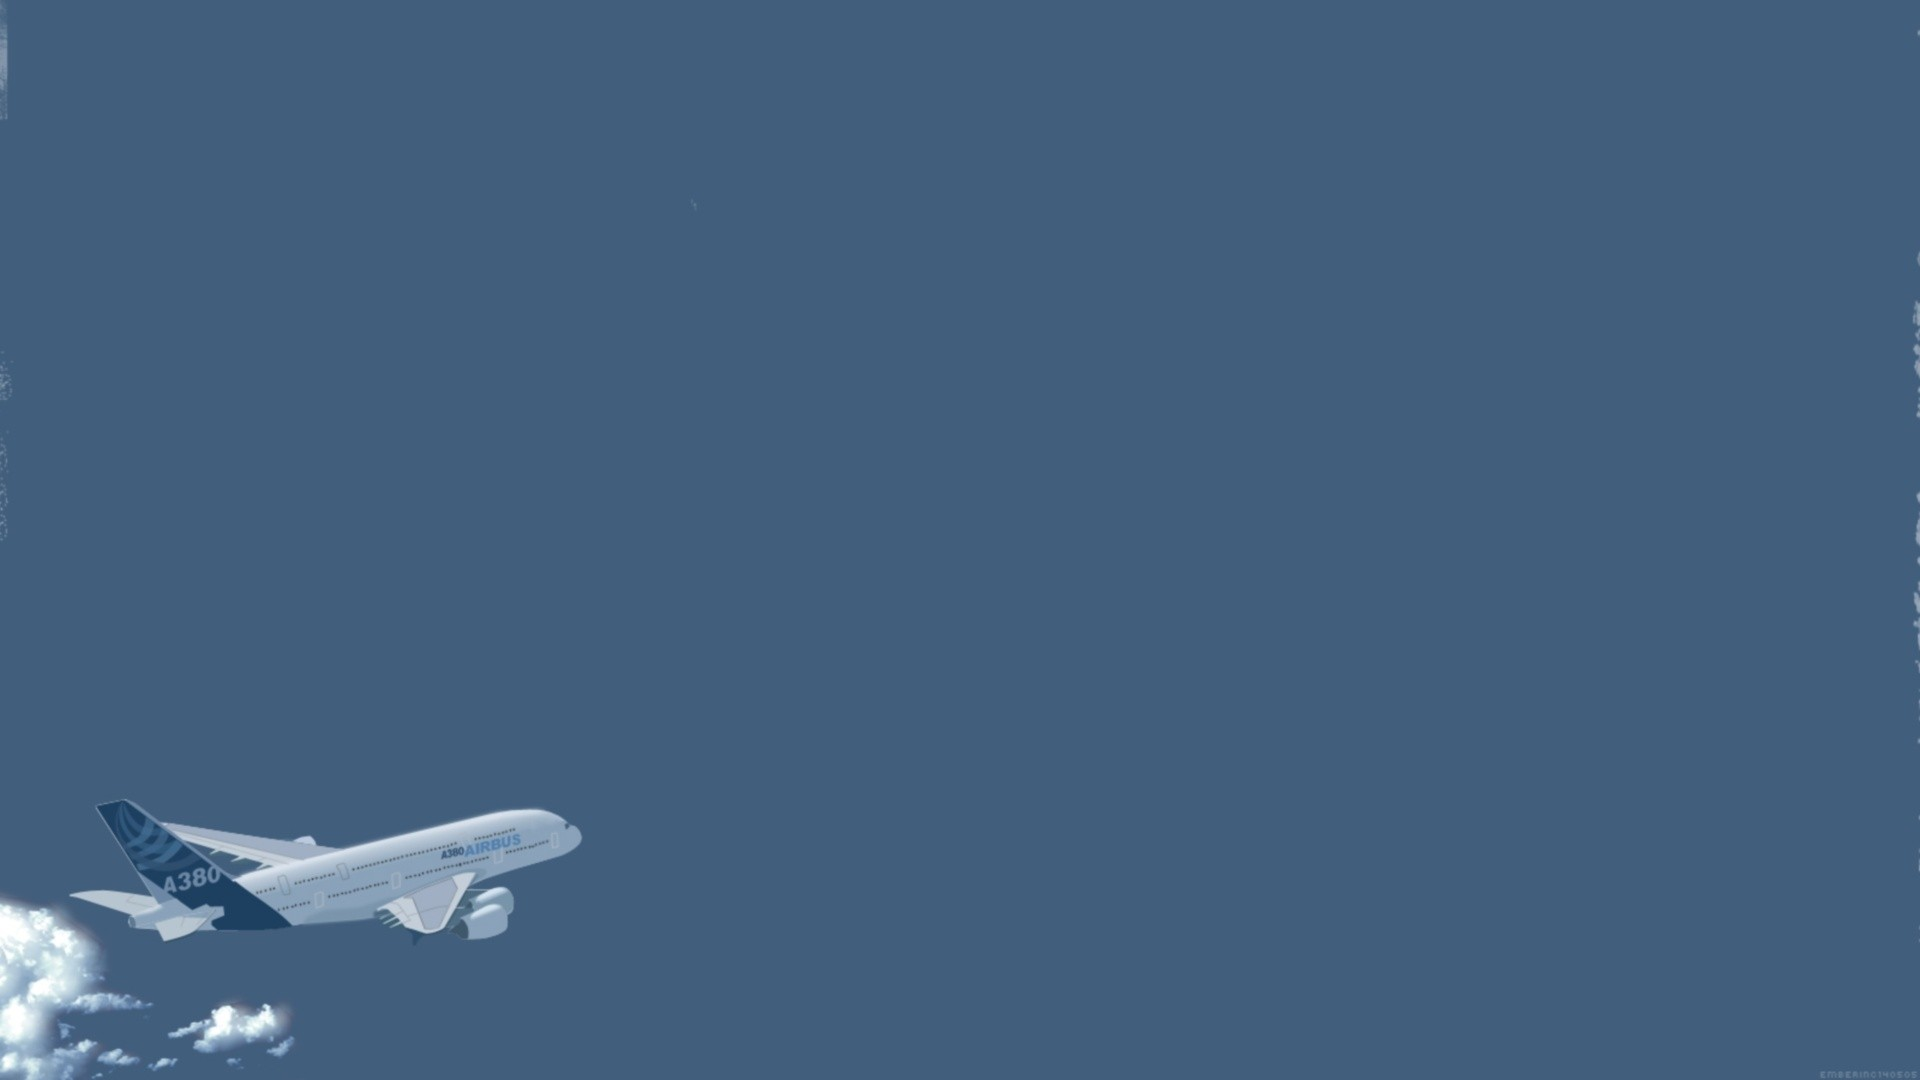 Airplane Minimalist Picture